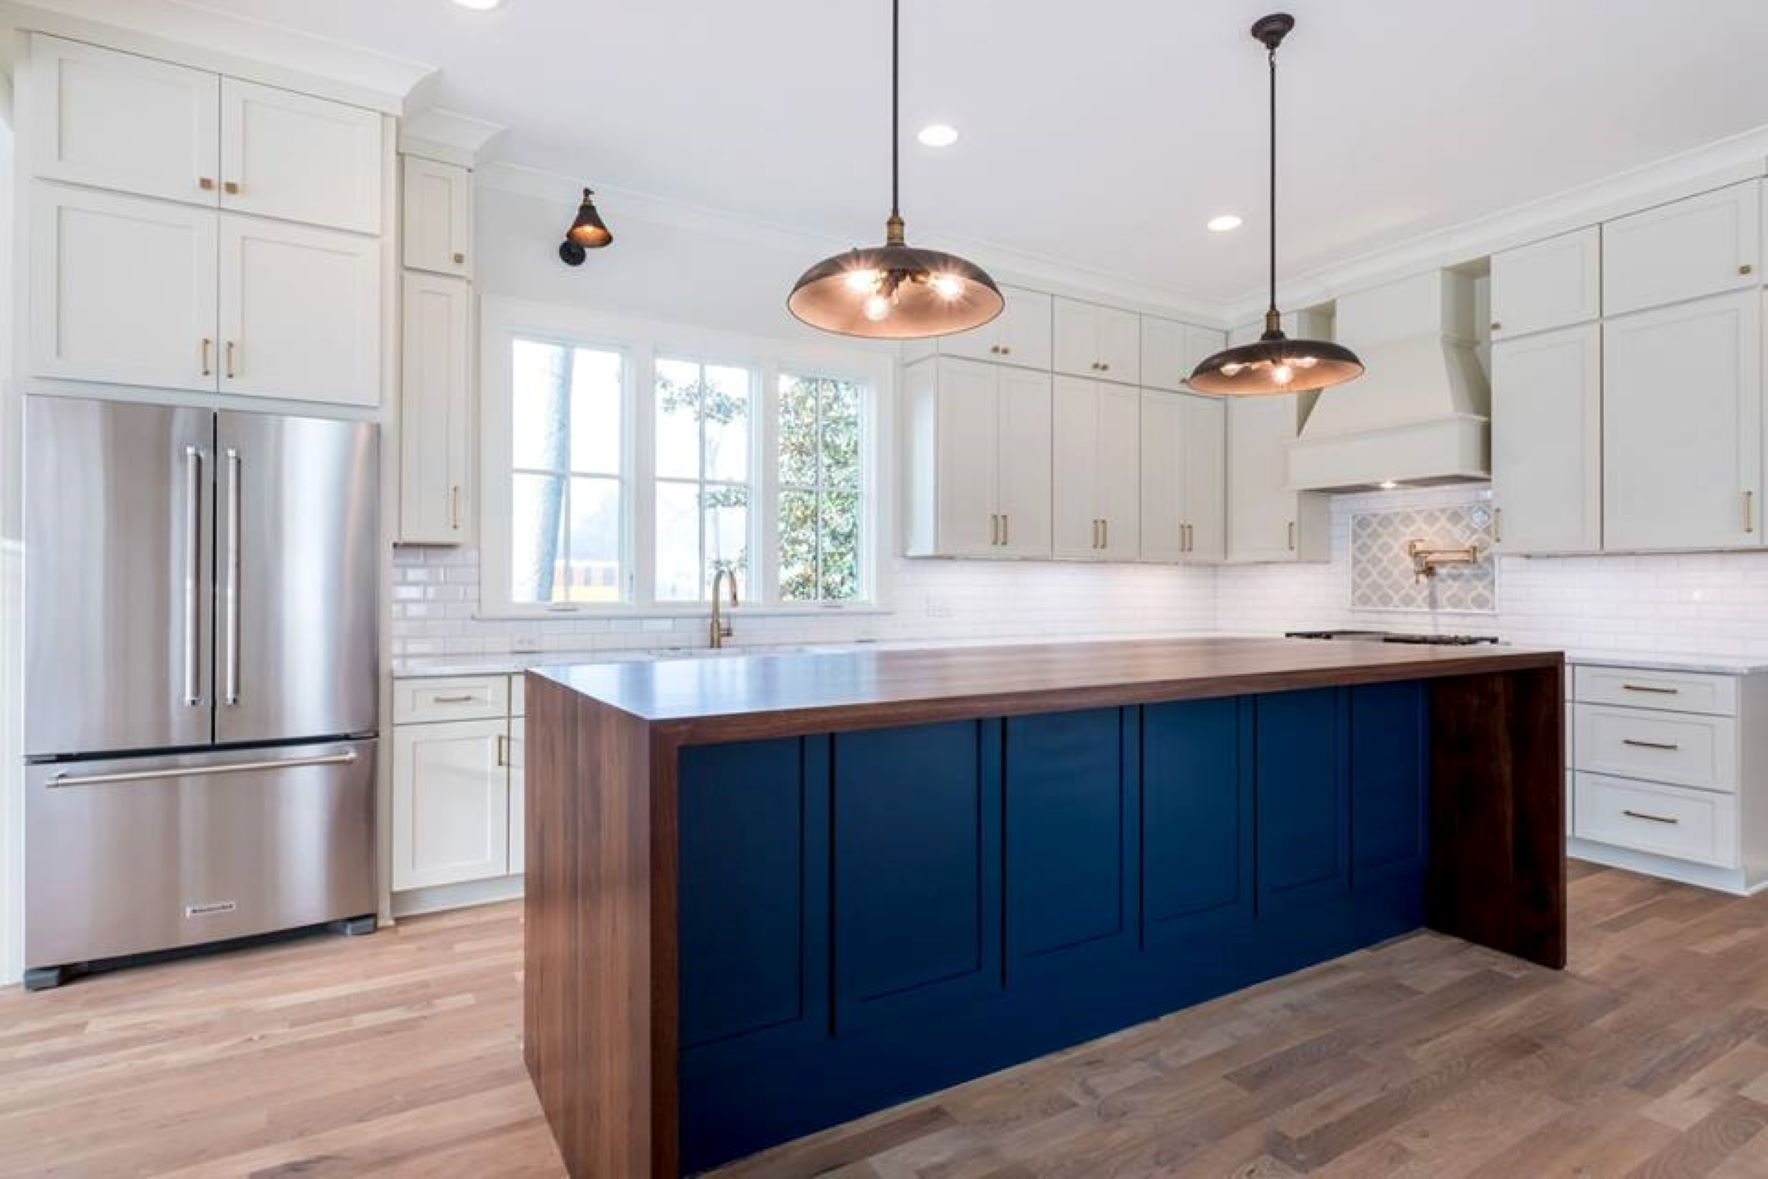 kbkitchen custom kitchen countertops KB Kitchen and Bath offers the highest quality kitchen and bath cabinetry and countertops from the best most trusted manufacturers in the industry